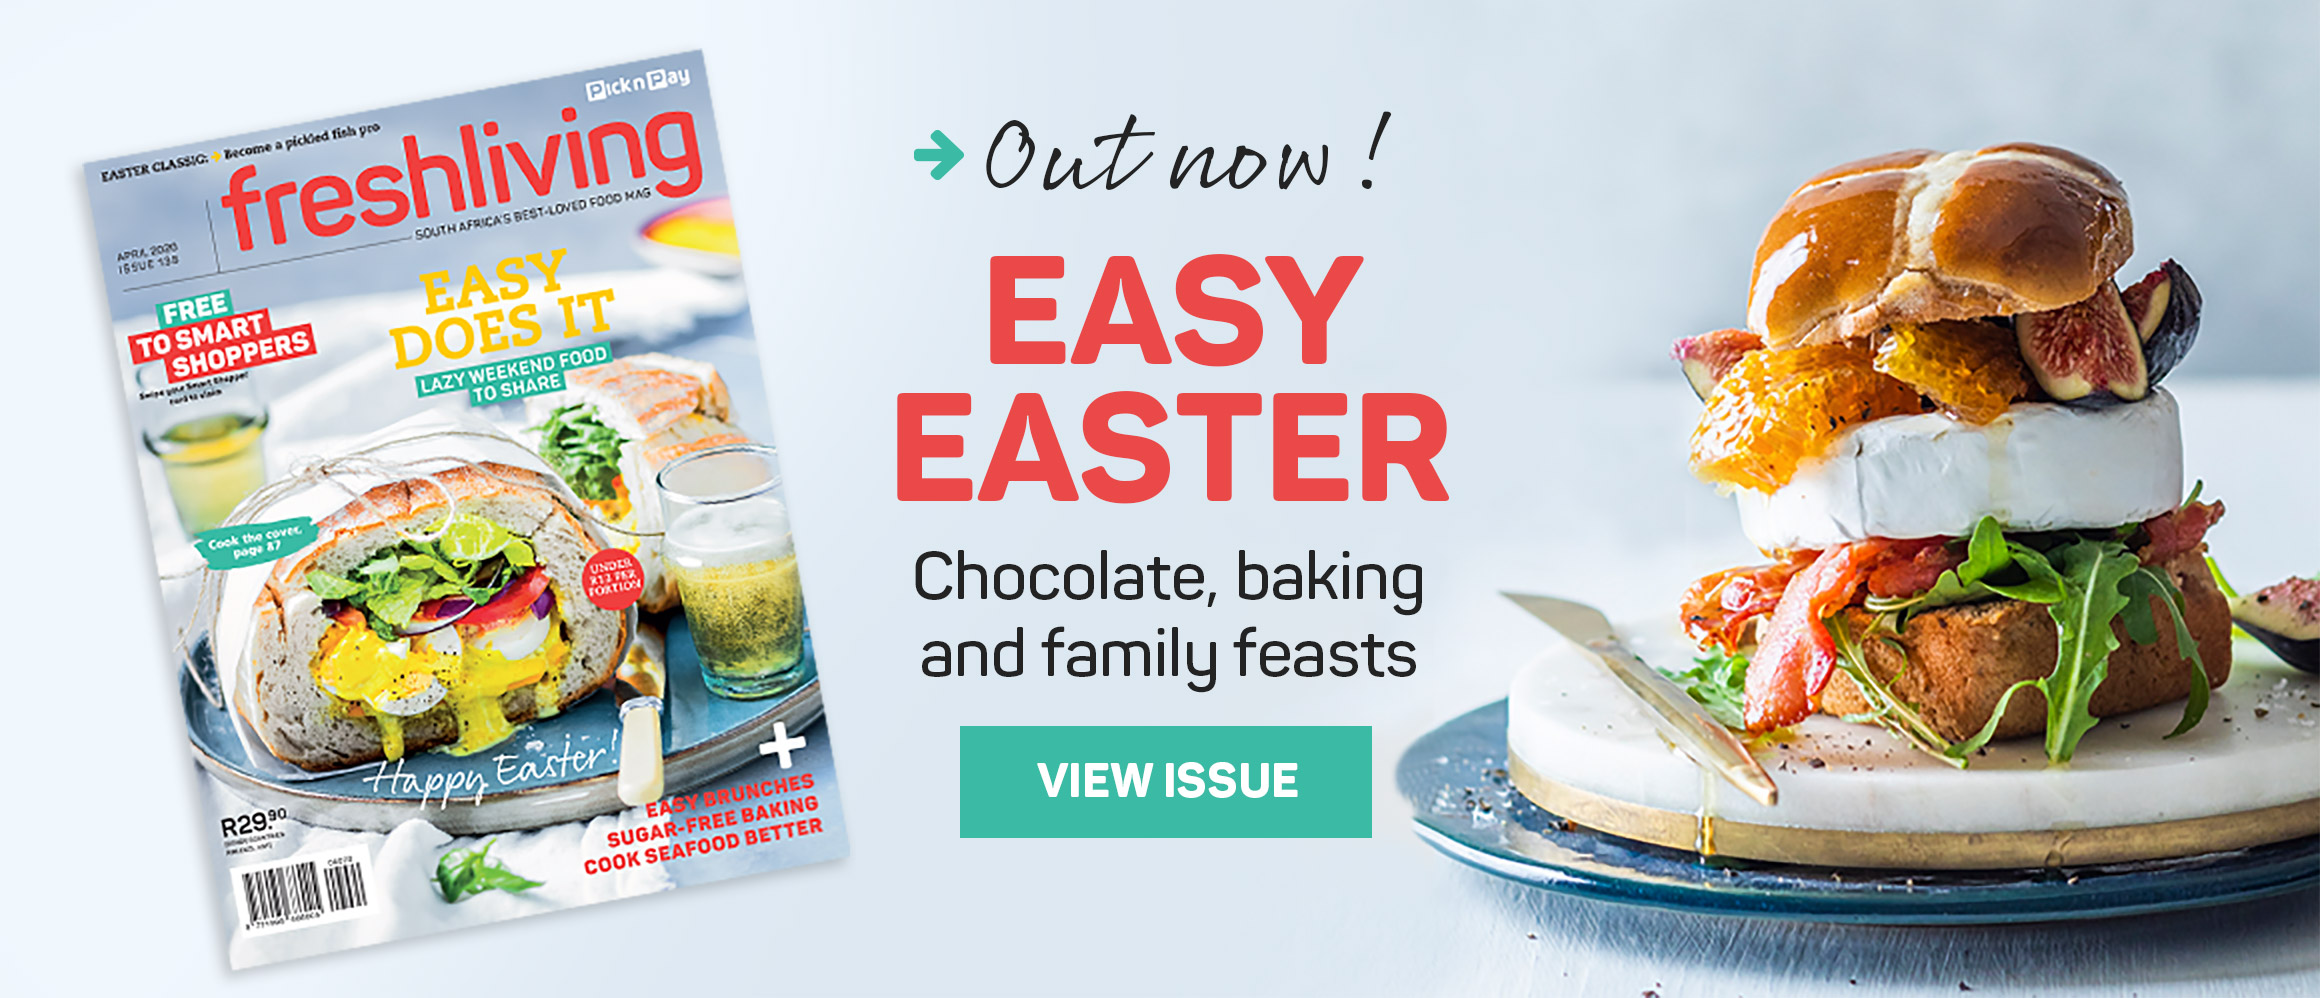 Out now! Easy Easter. Chocolate, baking and family feasts. View issue